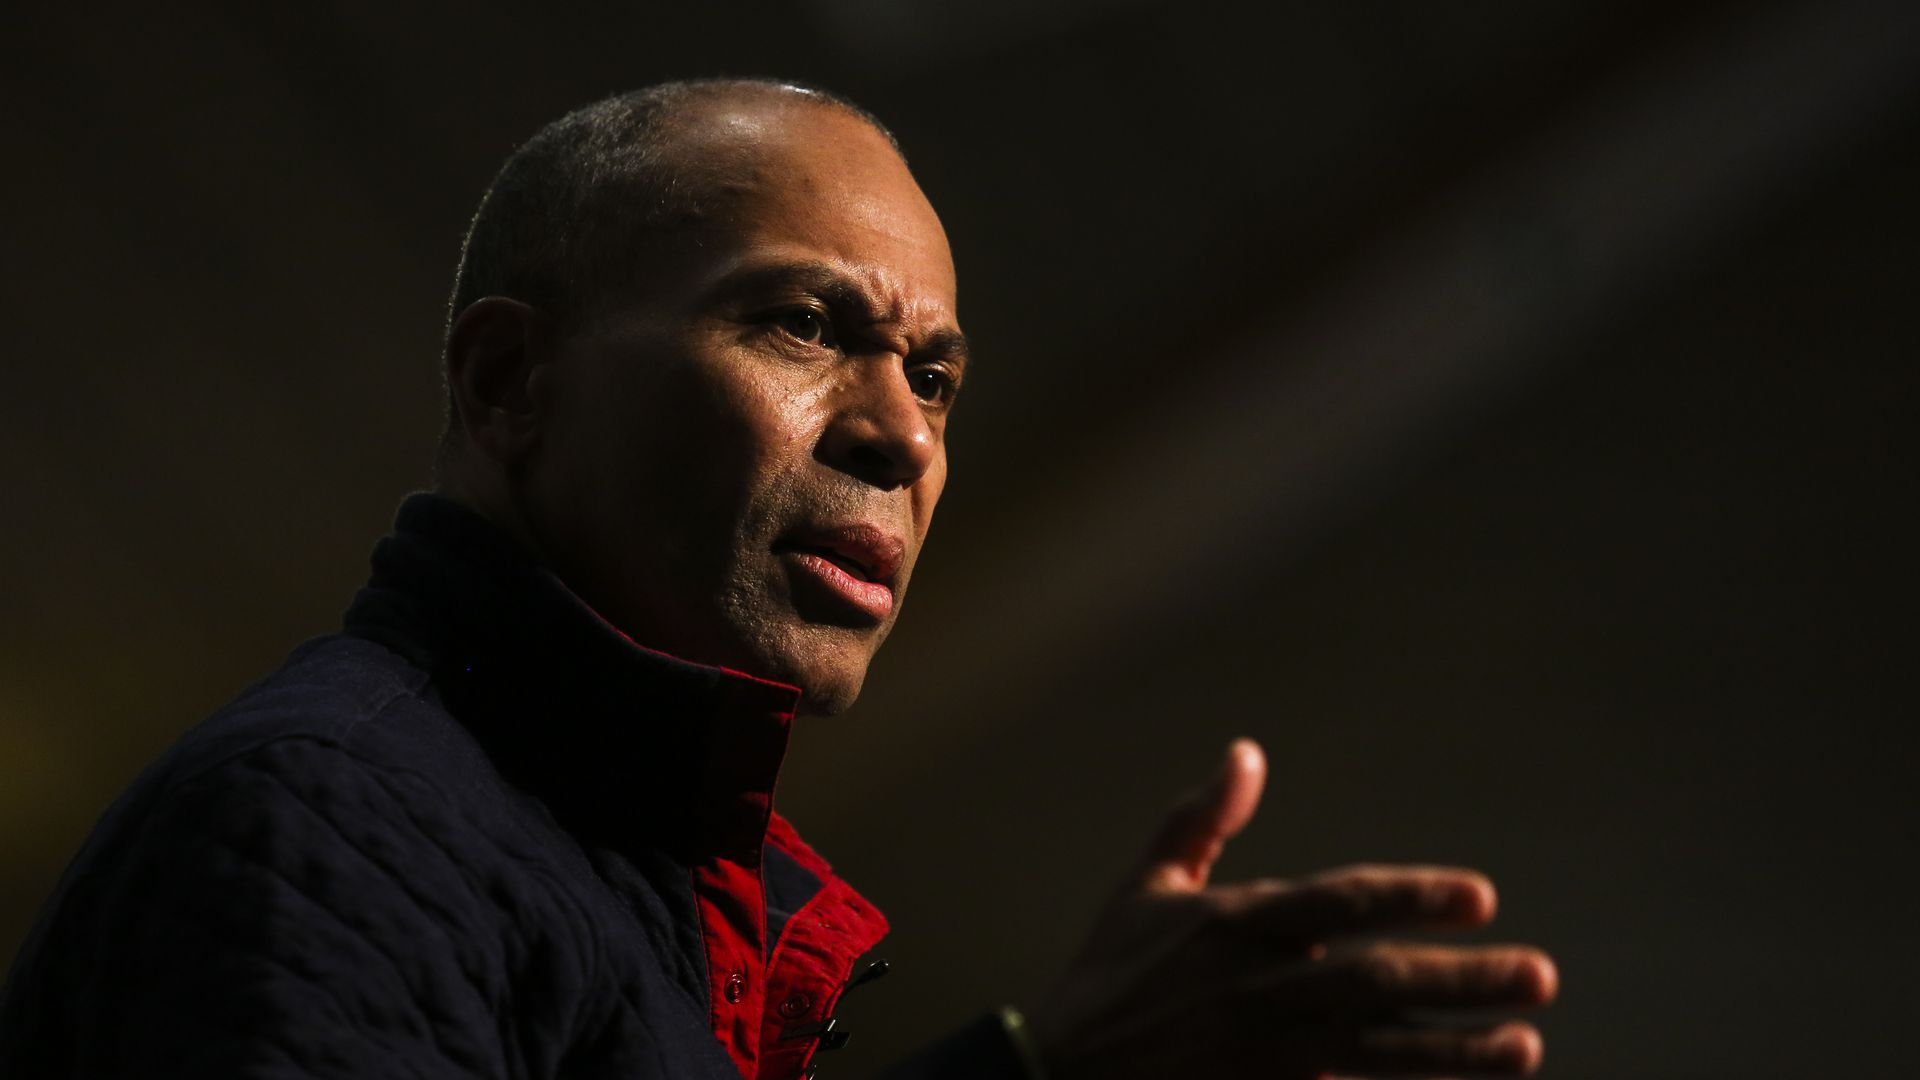 Close-up shot of former Massachusetts Governor Deval Patrick at a presidential campaign event